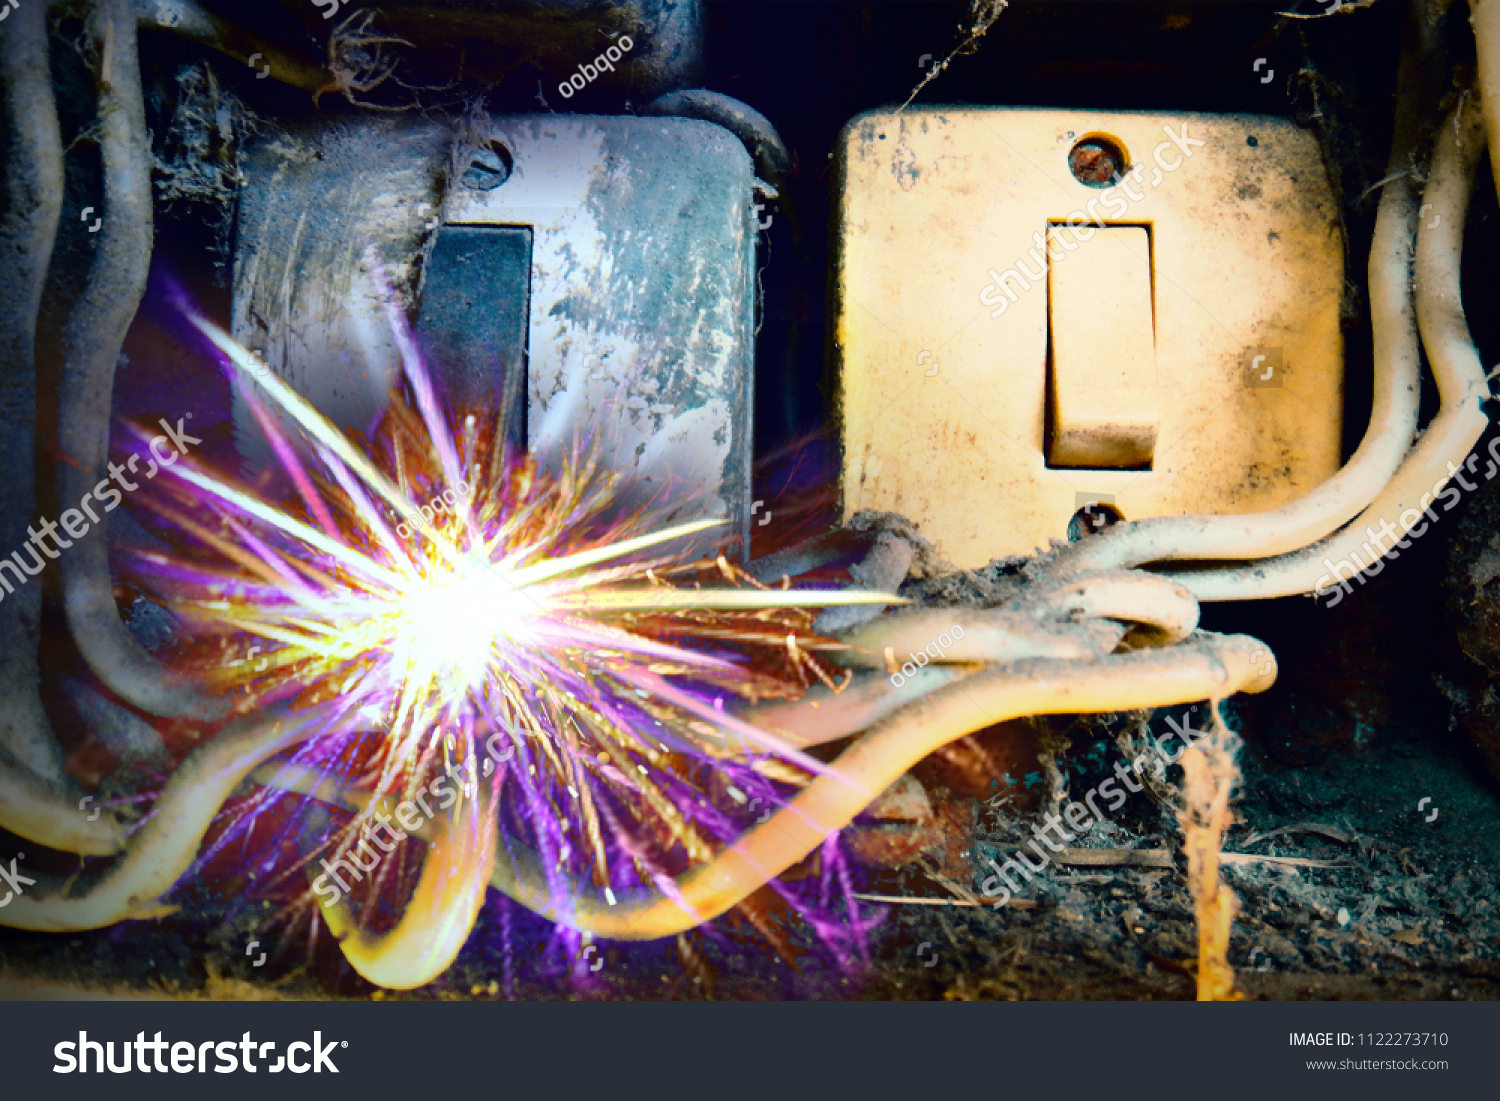 Old Electric Power Supply Boxes Industrial Stock Photo Edit Now Electrical Fuse Background Overloaded Circuit Causing To Break